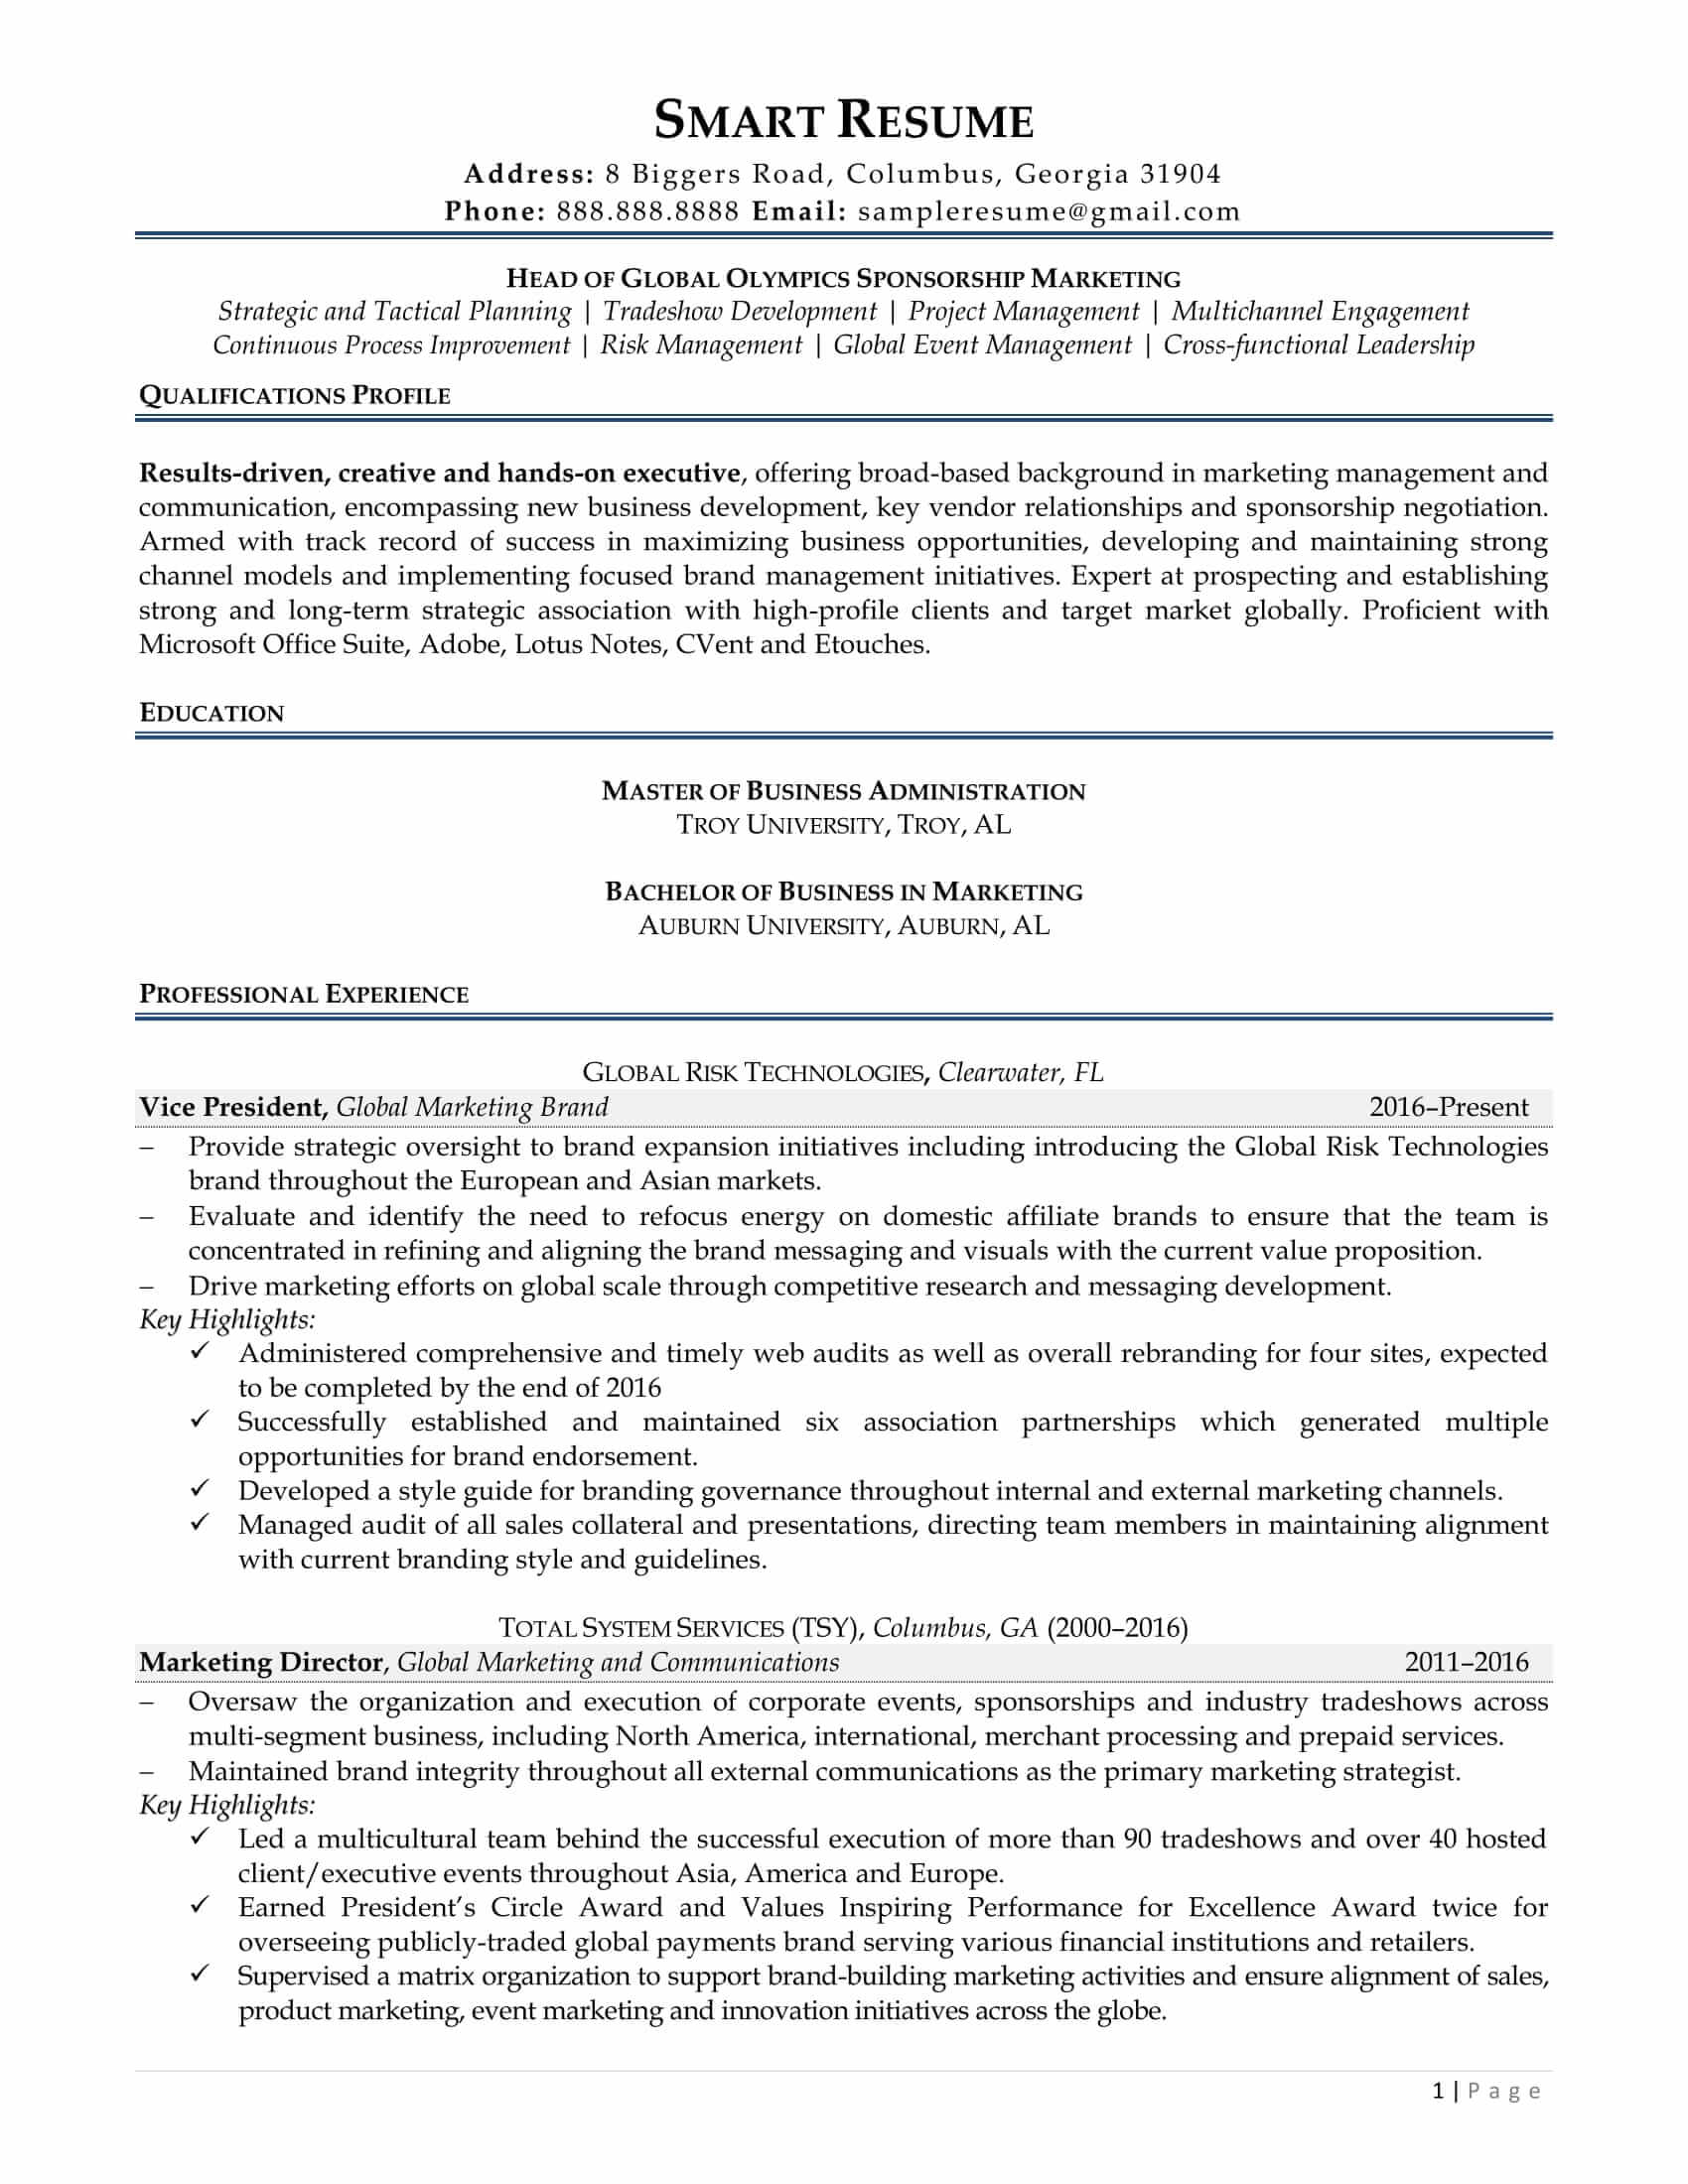 Sponsorship Manager Resume - twnctry